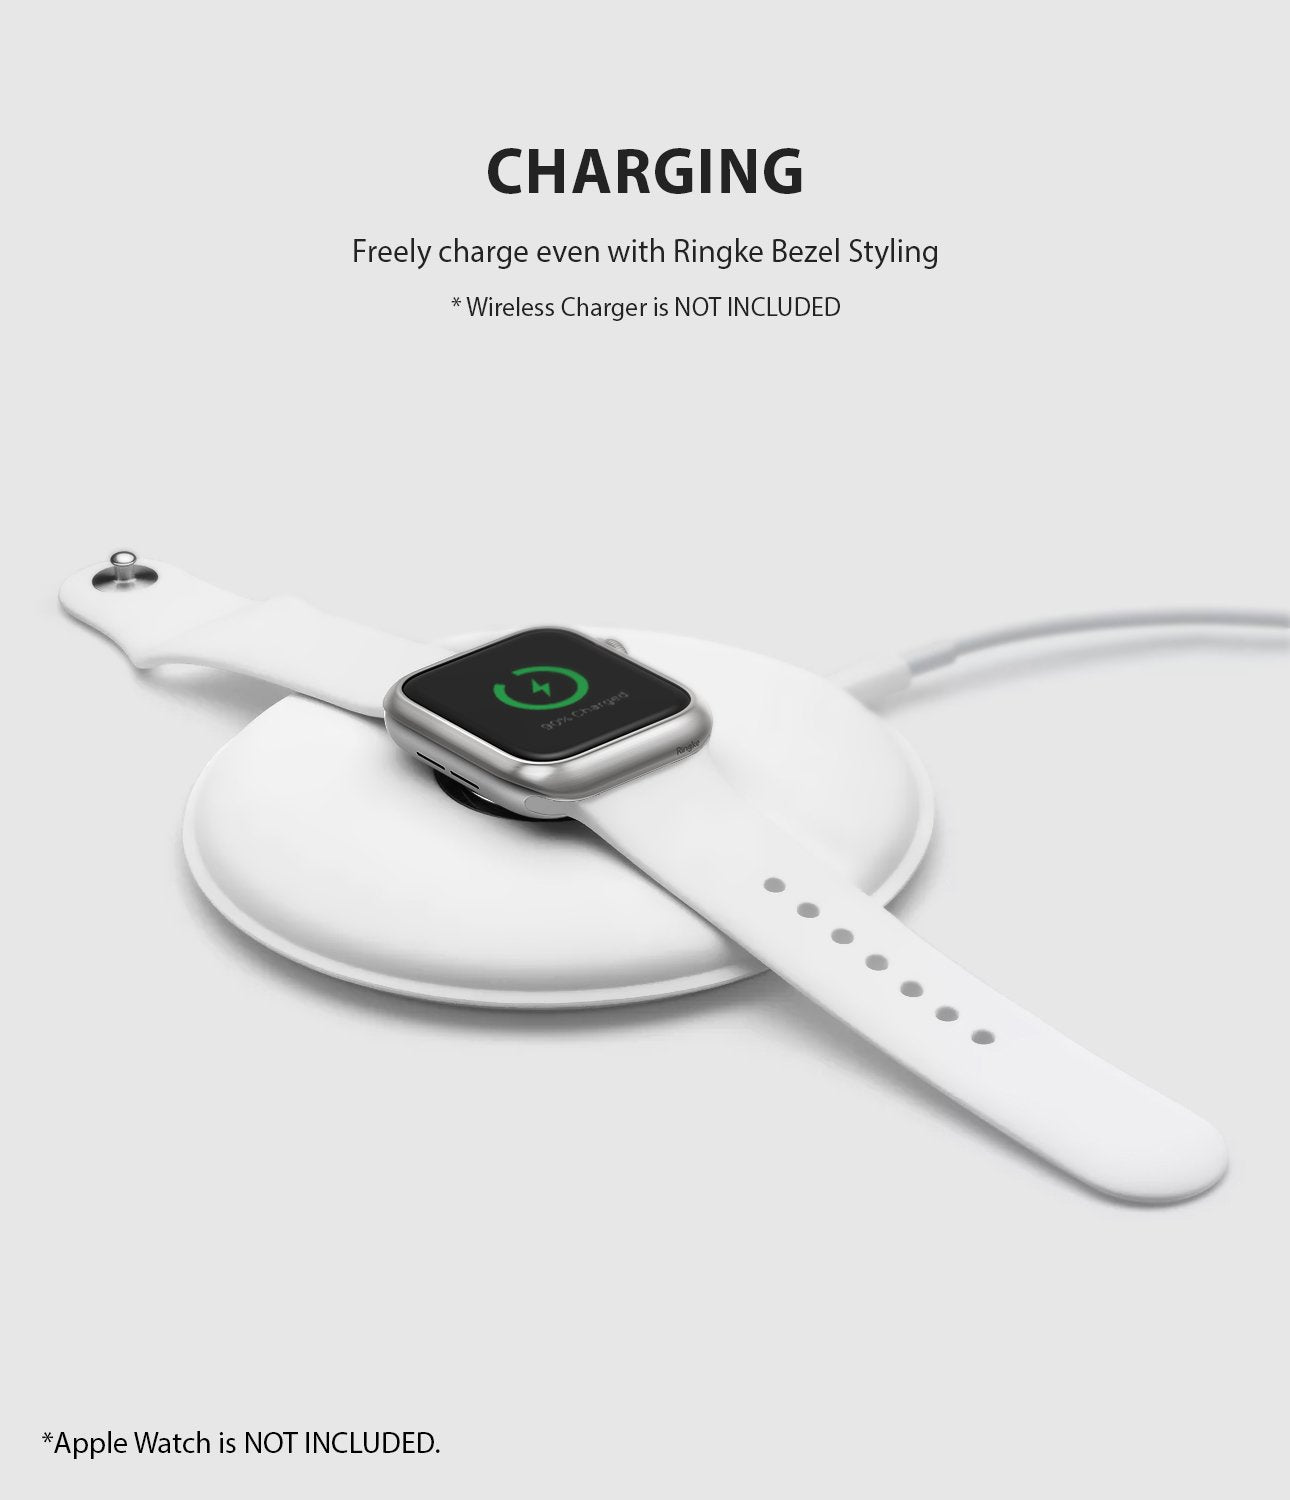 ringke bezel styling 40-09 matte silver stainless steel on apple watch series 6 / 5 / 4 / SE 40mm wireless charging